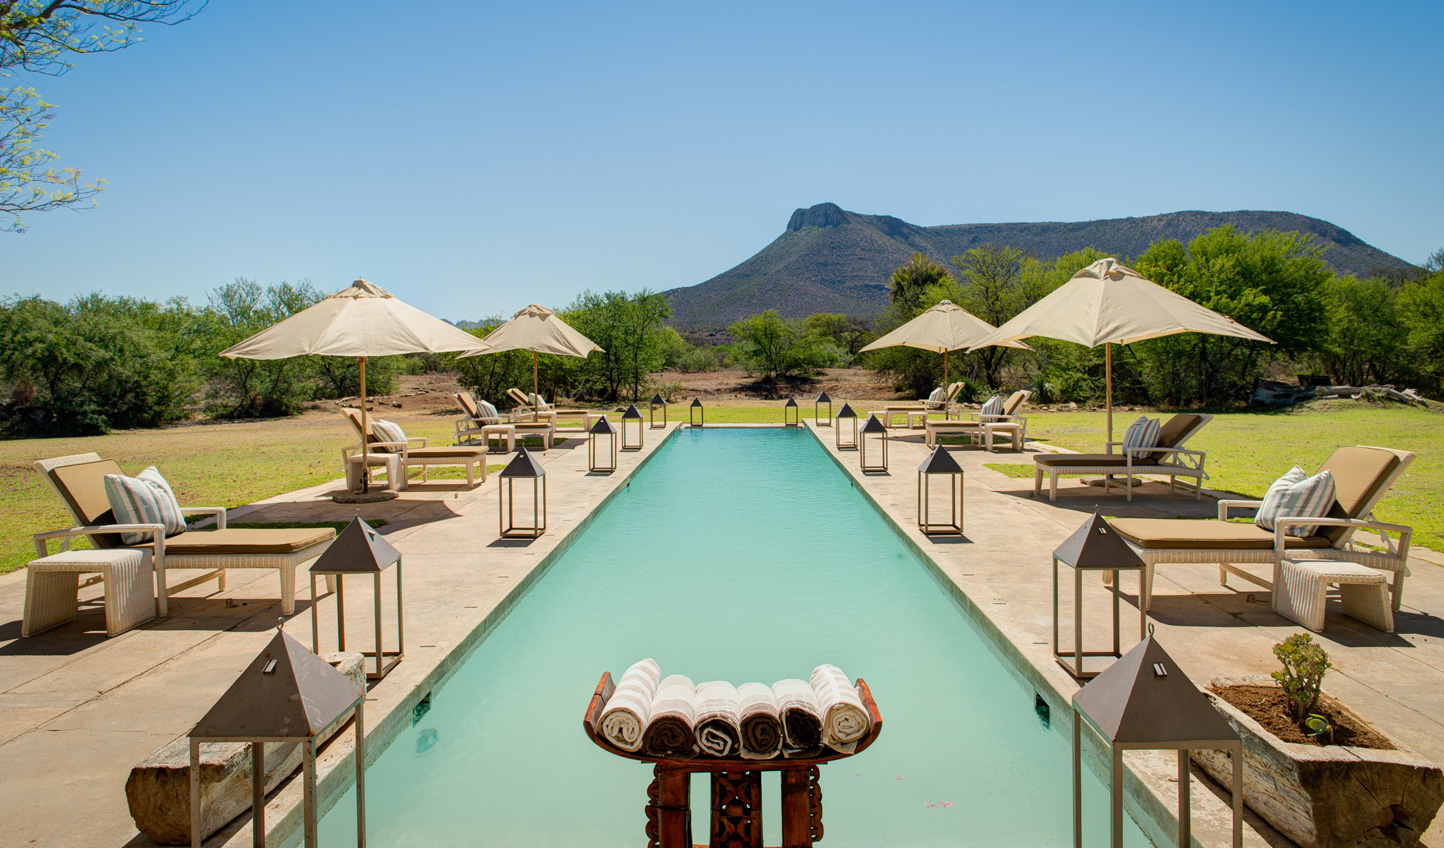 Enjoy the South African heat by the pool